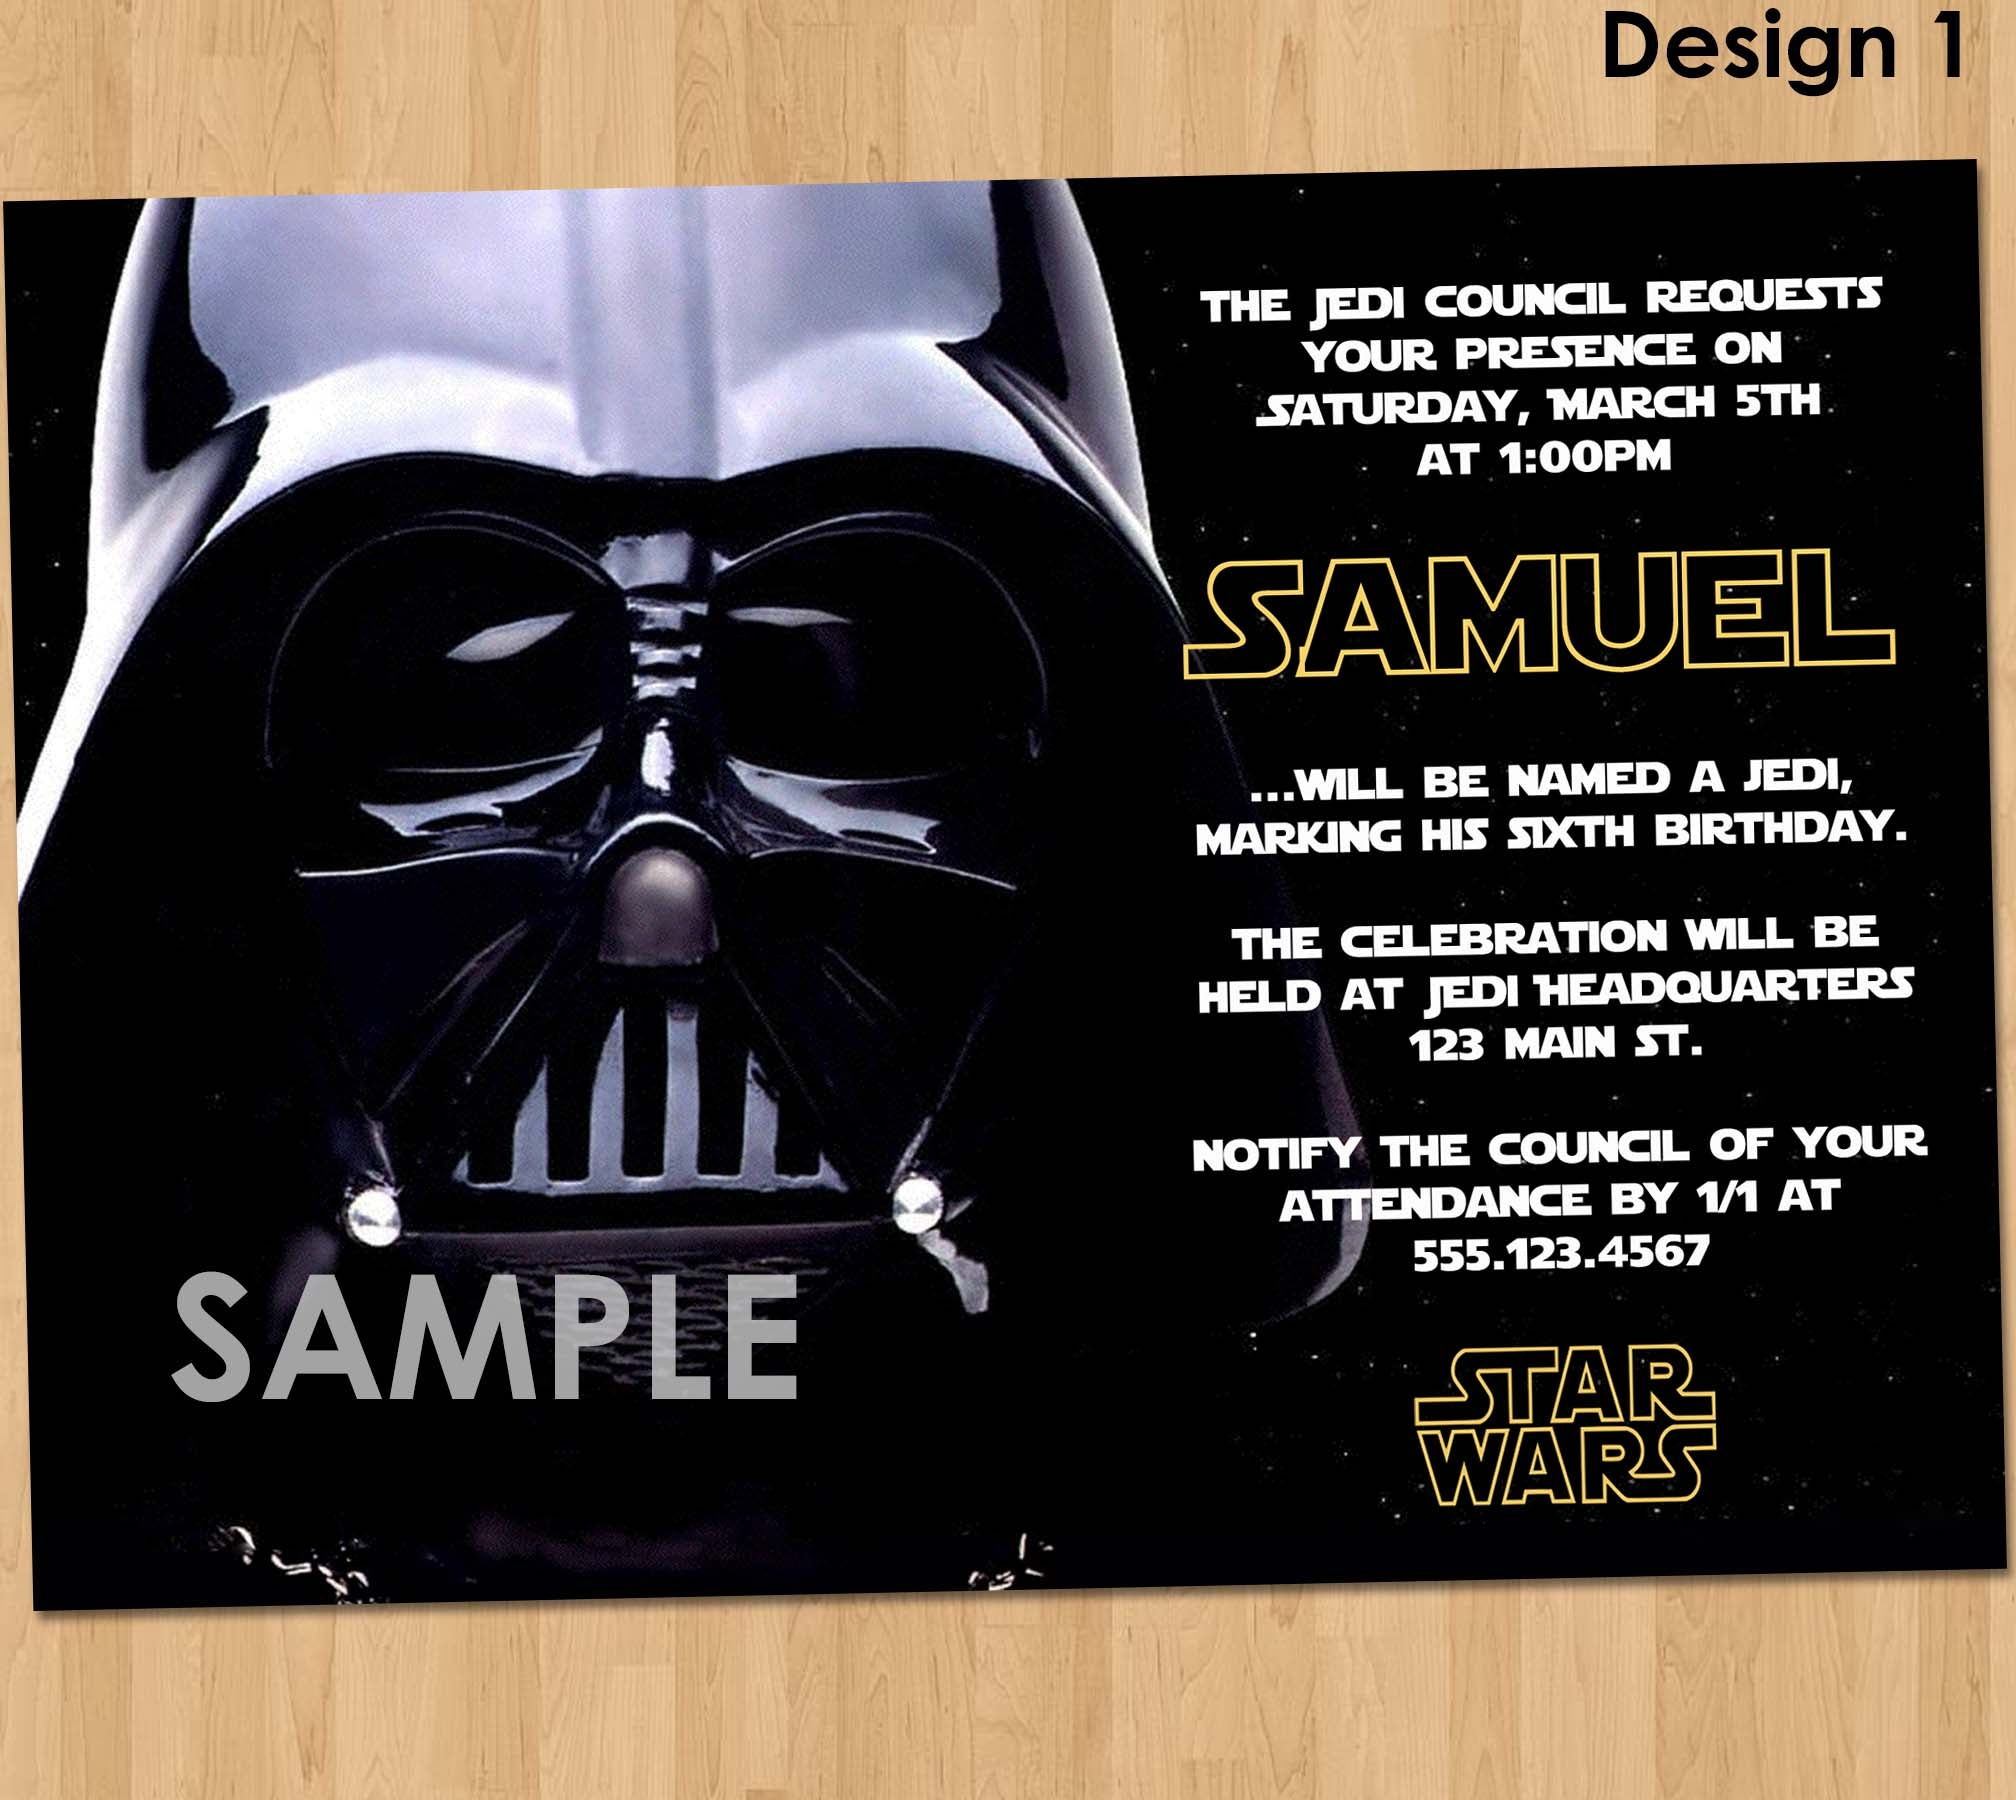 graphic about Star Wars Birthday Invitations Printable named Star Wars Bash Invitation - Star Wars Celebration Printable - Star Wars Invitation - Star Wars Birthday Bash - Darth Vader Birthday Social gathering